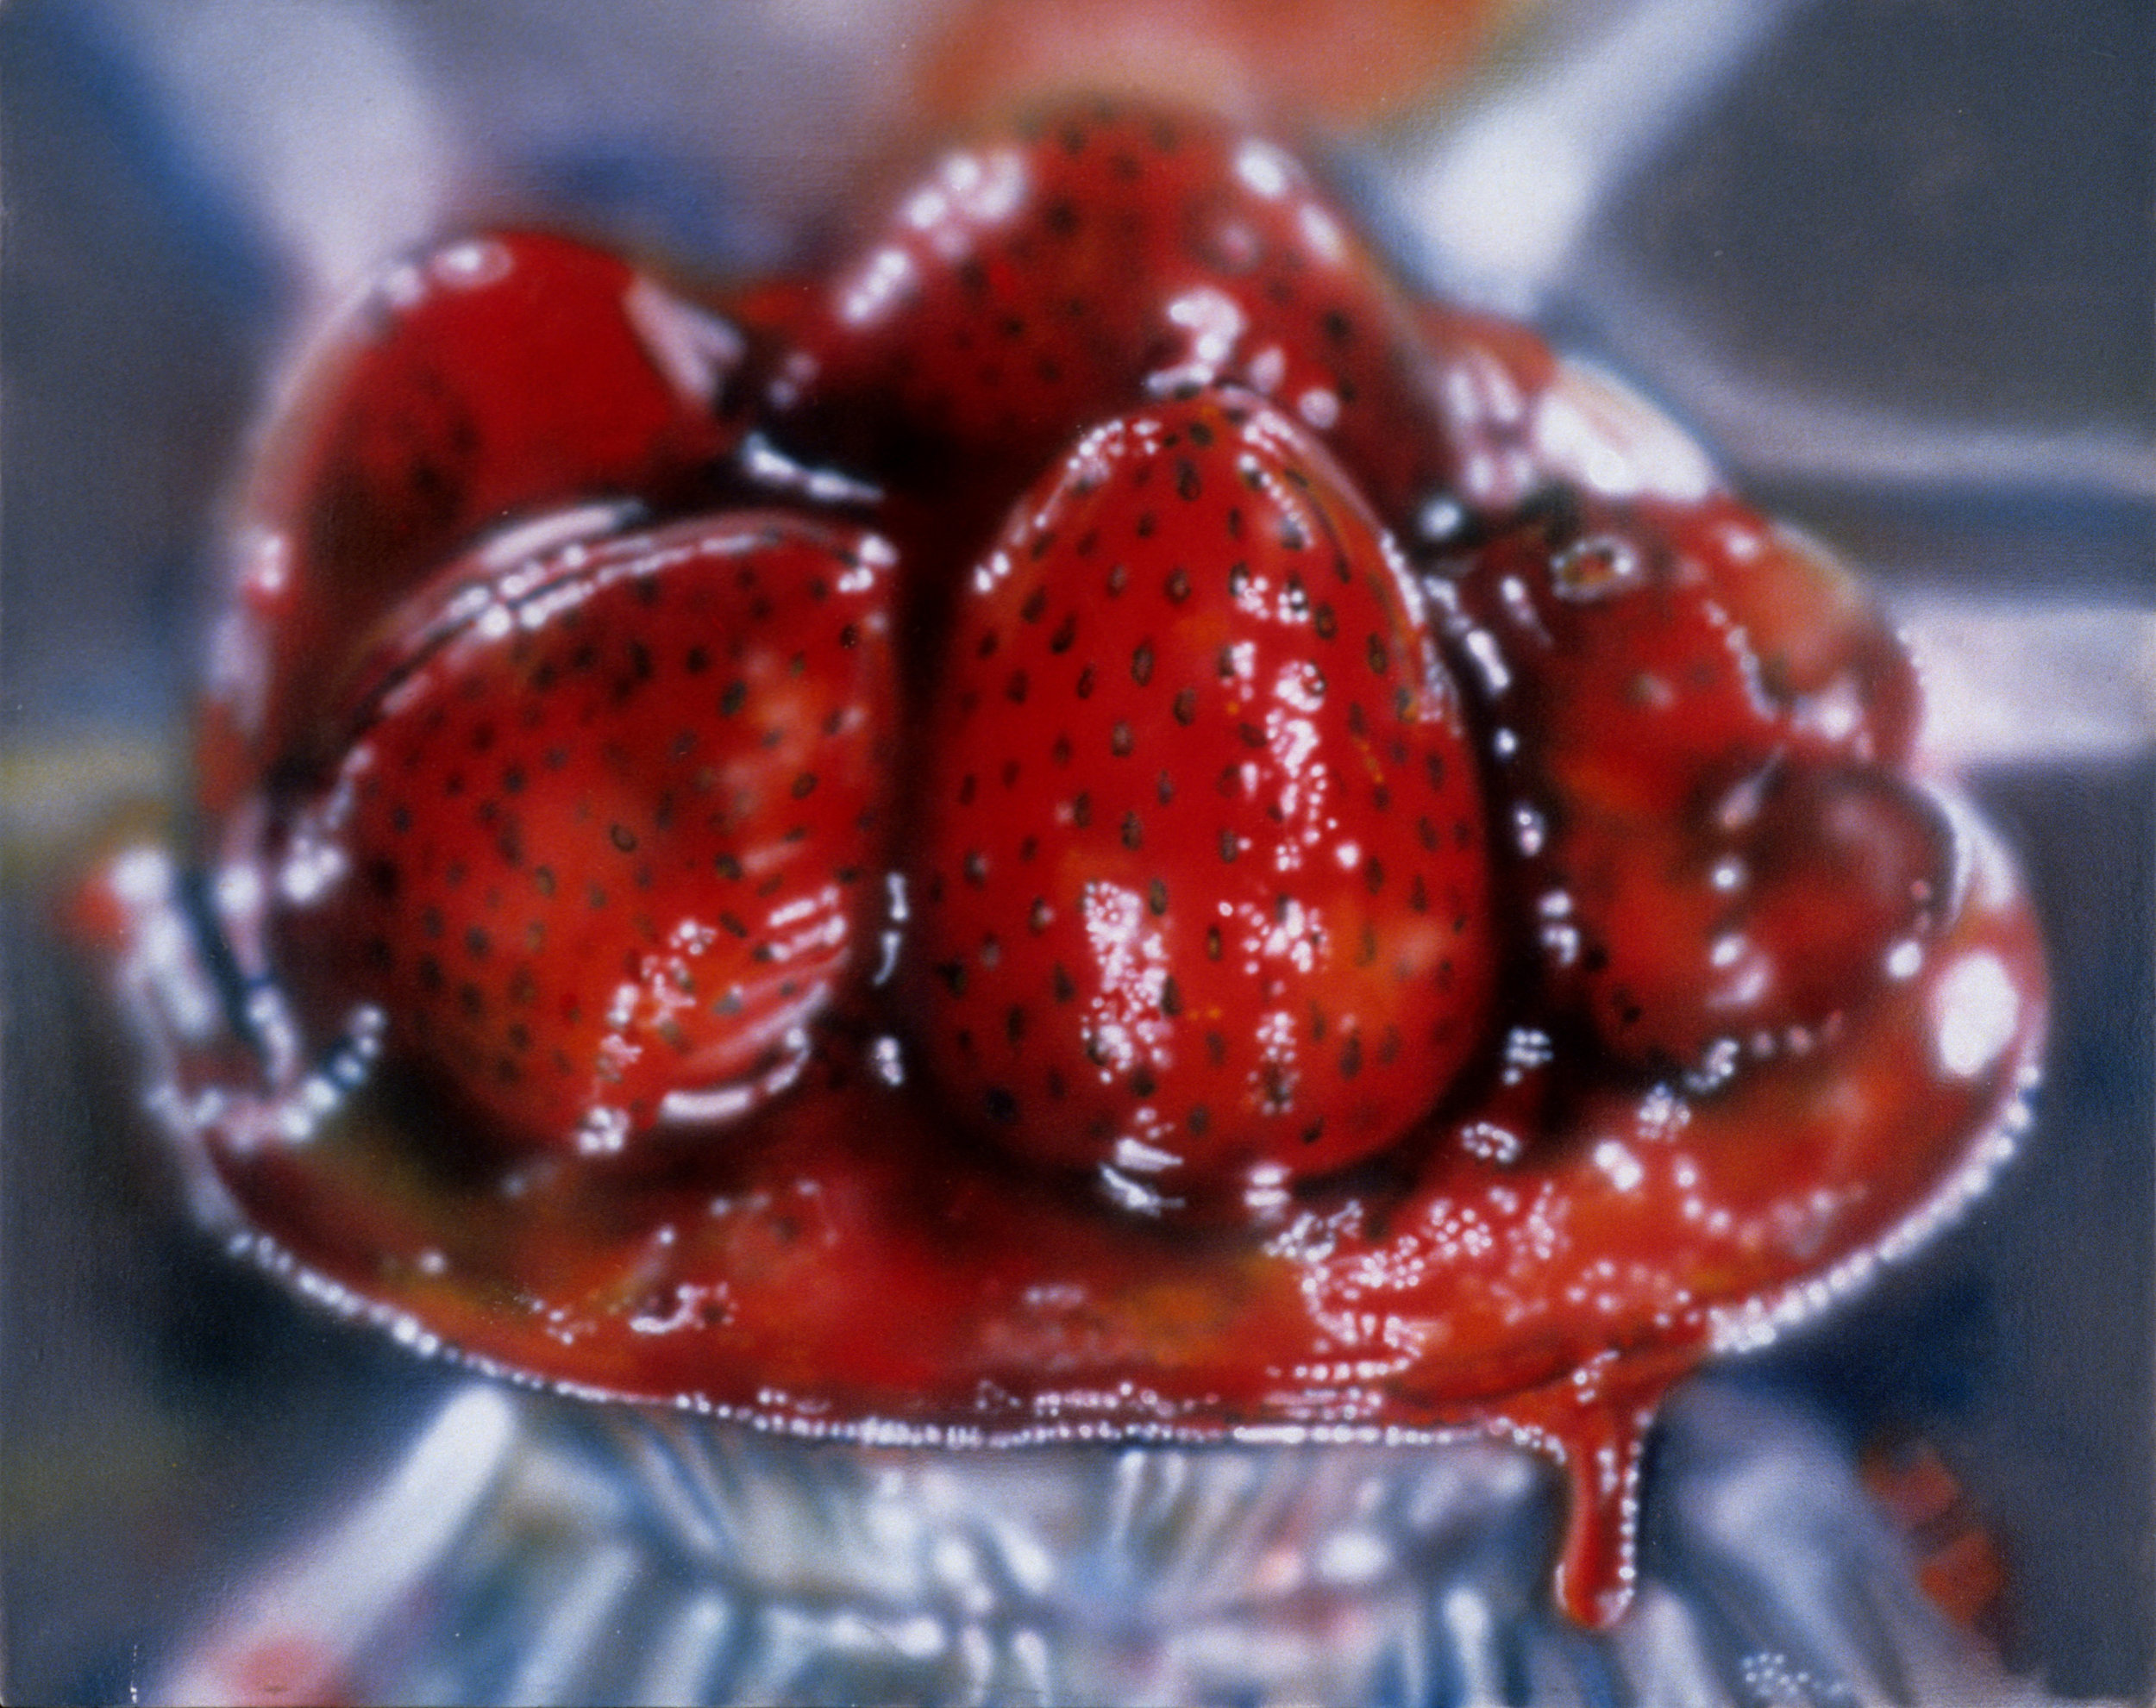 Flack_Strawberry Tart_1974_oil on canvas.jpg